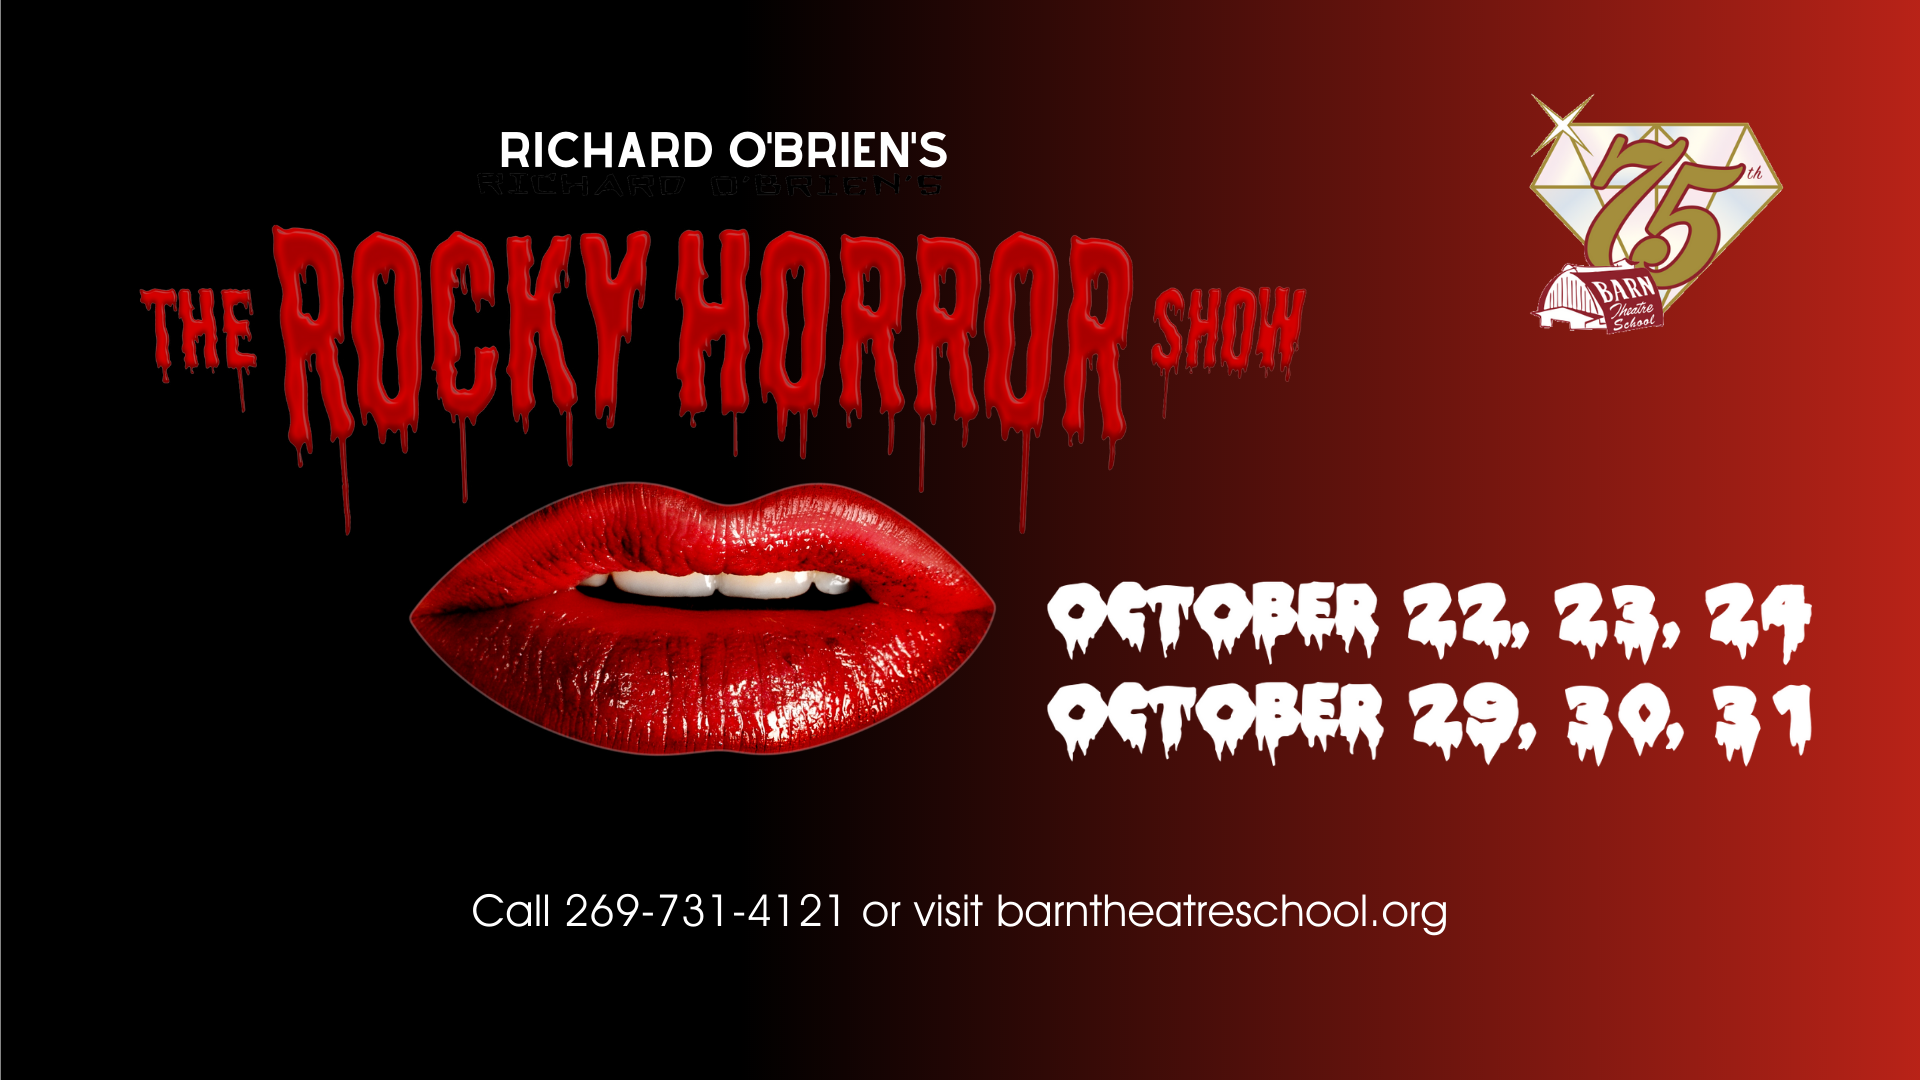 The Rocky Horror Show at the Barn Theatre from October 22 through 31, 2021 image